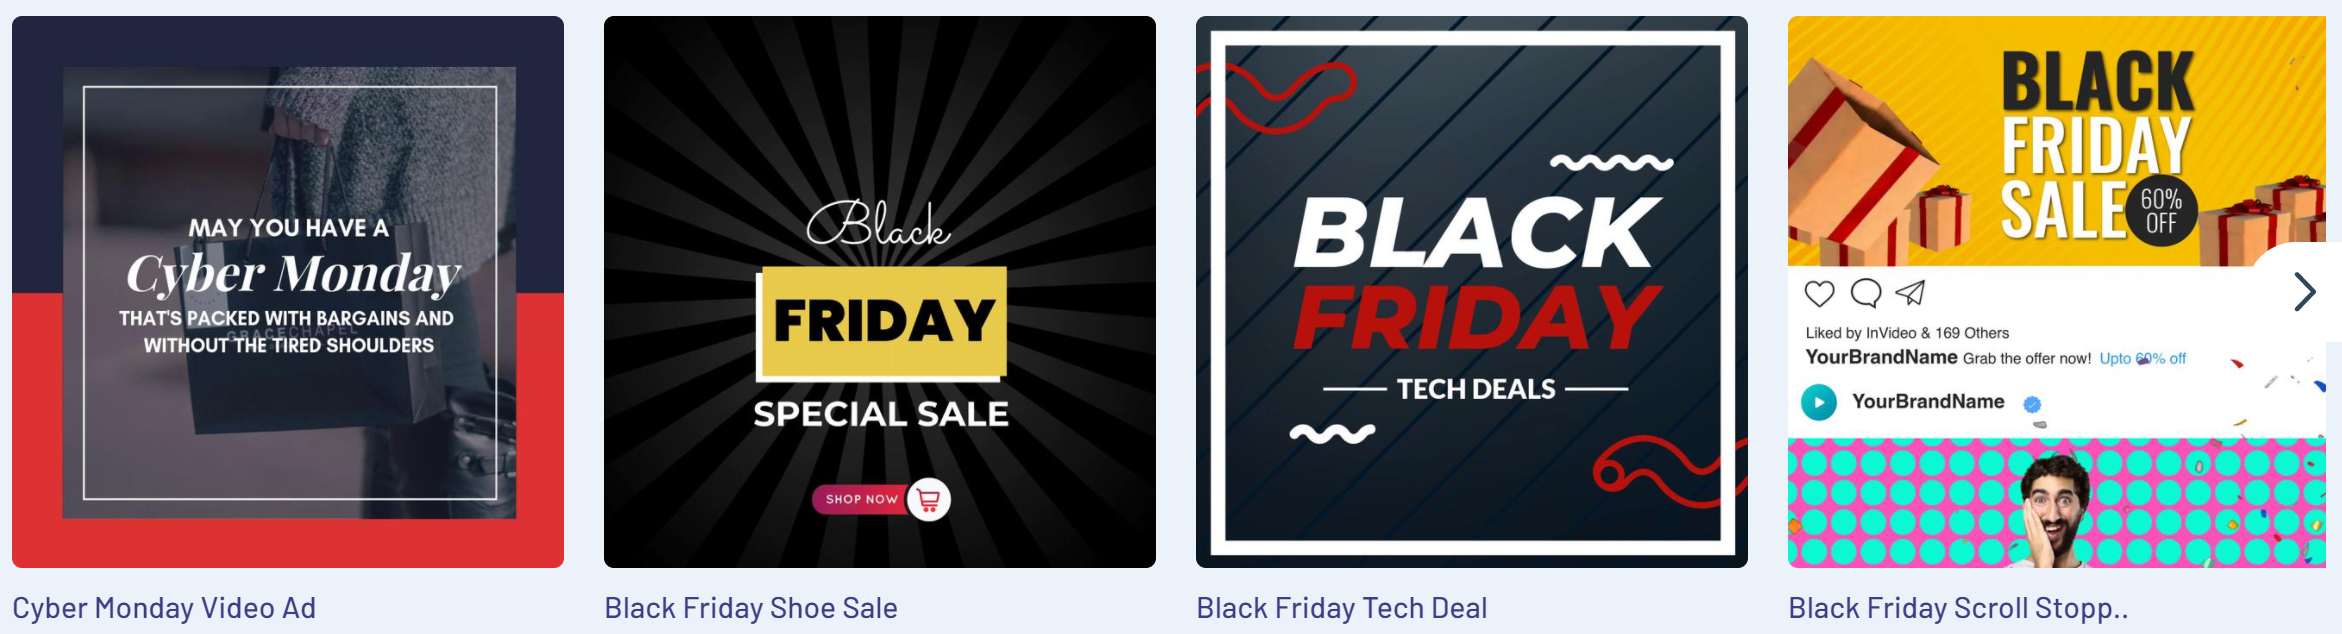 InVideo-video-templates-black-friday